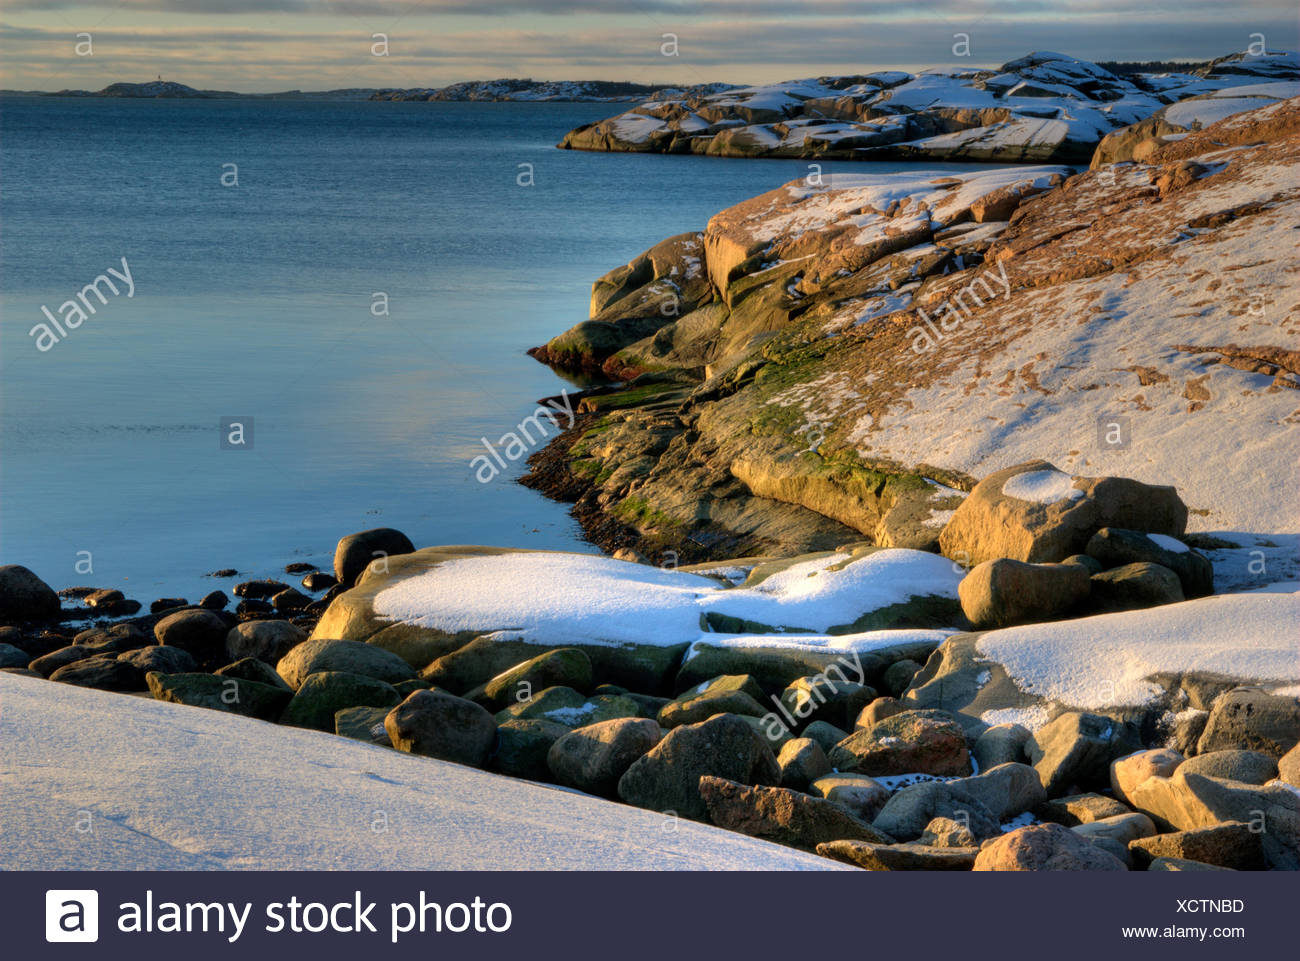 Flat rock by the ocean in the winter - Stock Image